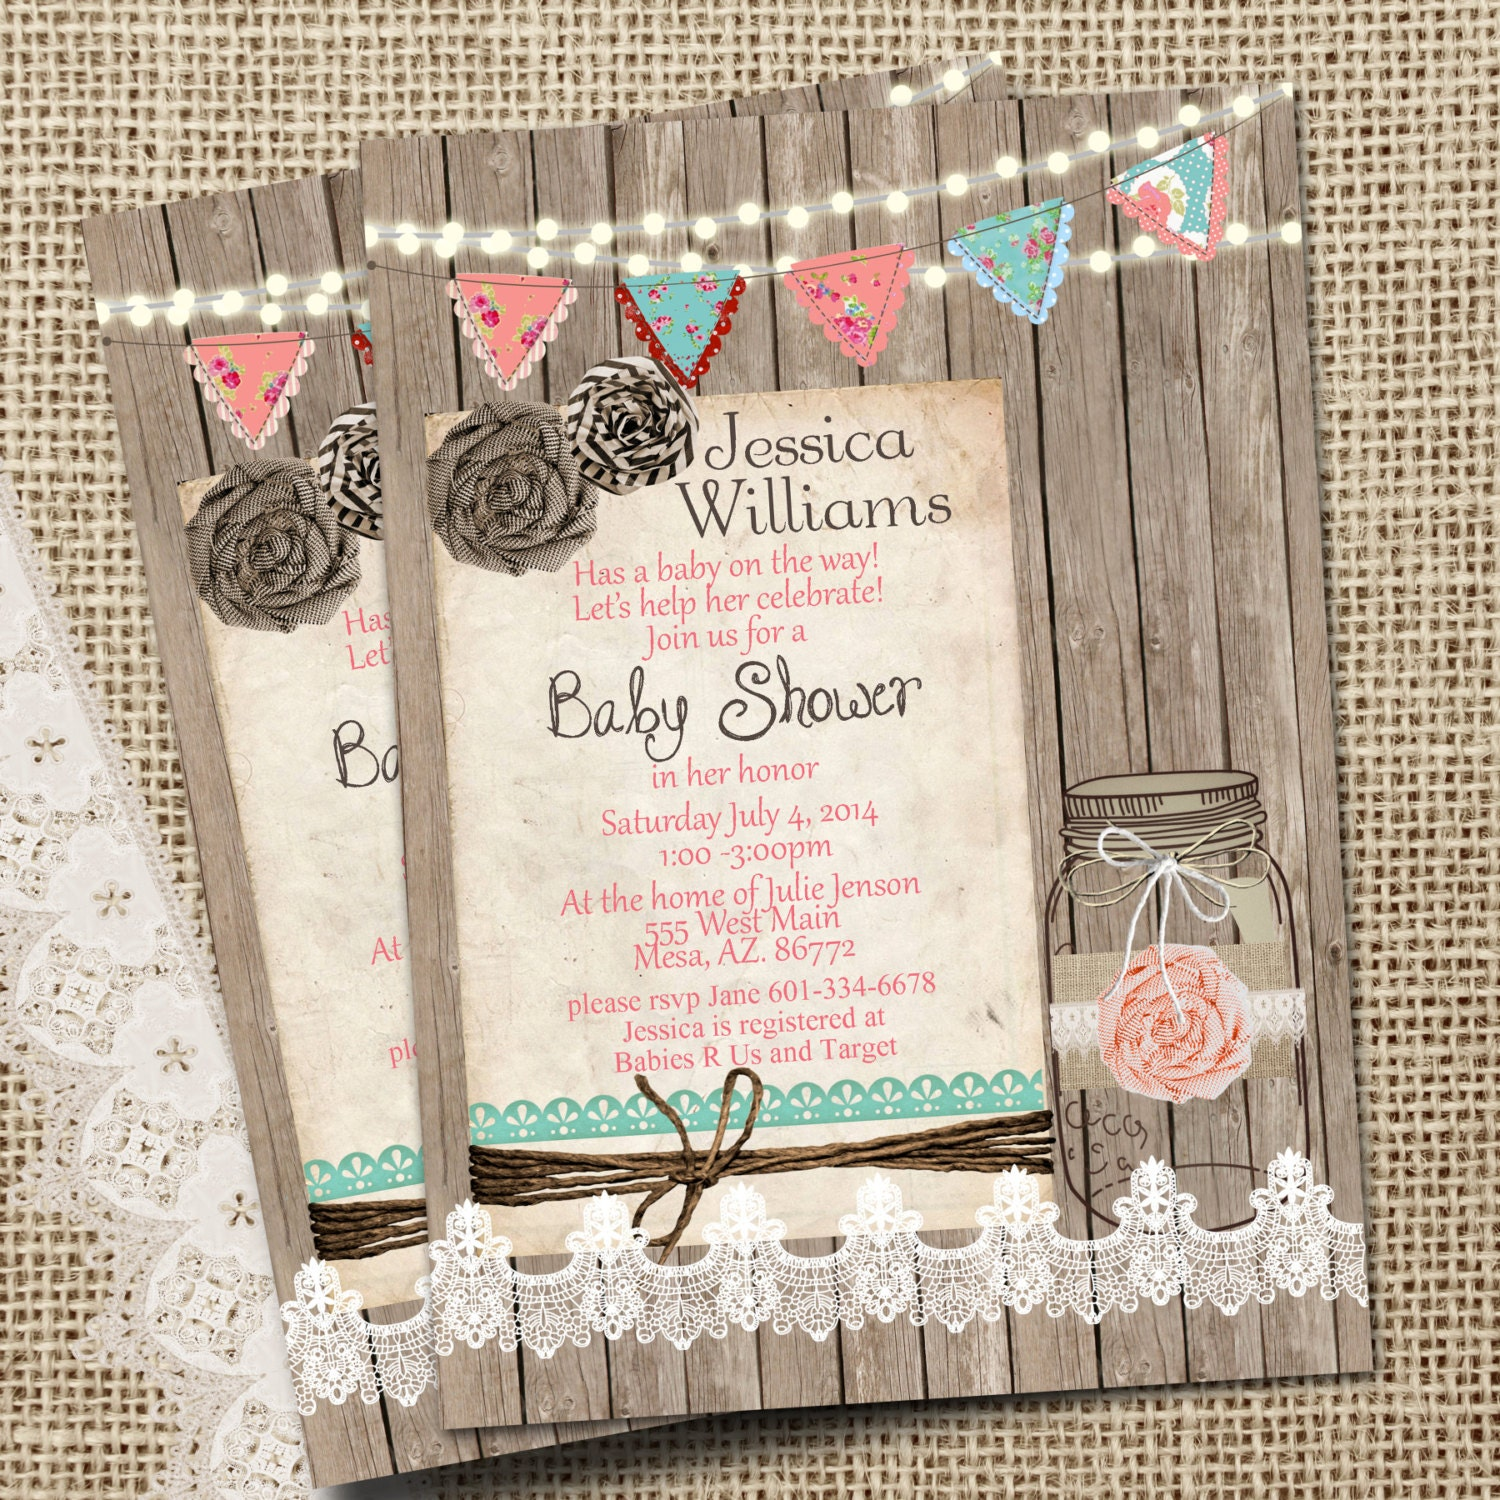 Rustic Mason Jar Burlap and Lace Baby Shower Invitation